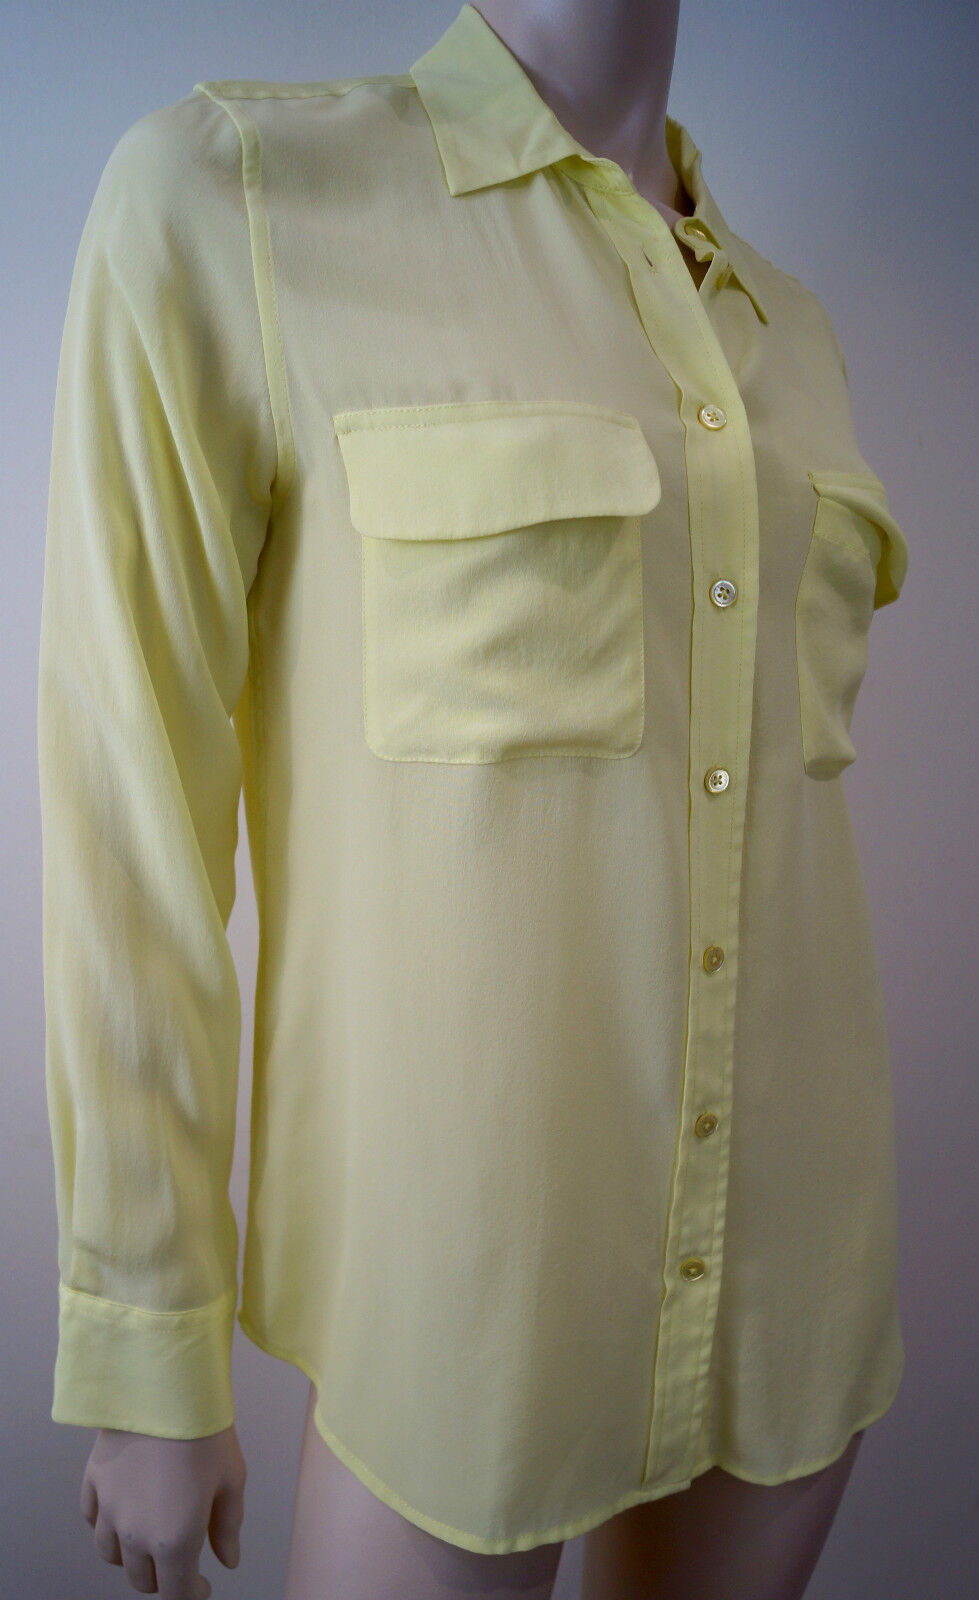 EQUIPMENT FEMME Lime Sherbet Gelb 100% Silk Sheer Evening Blouse M BNWT